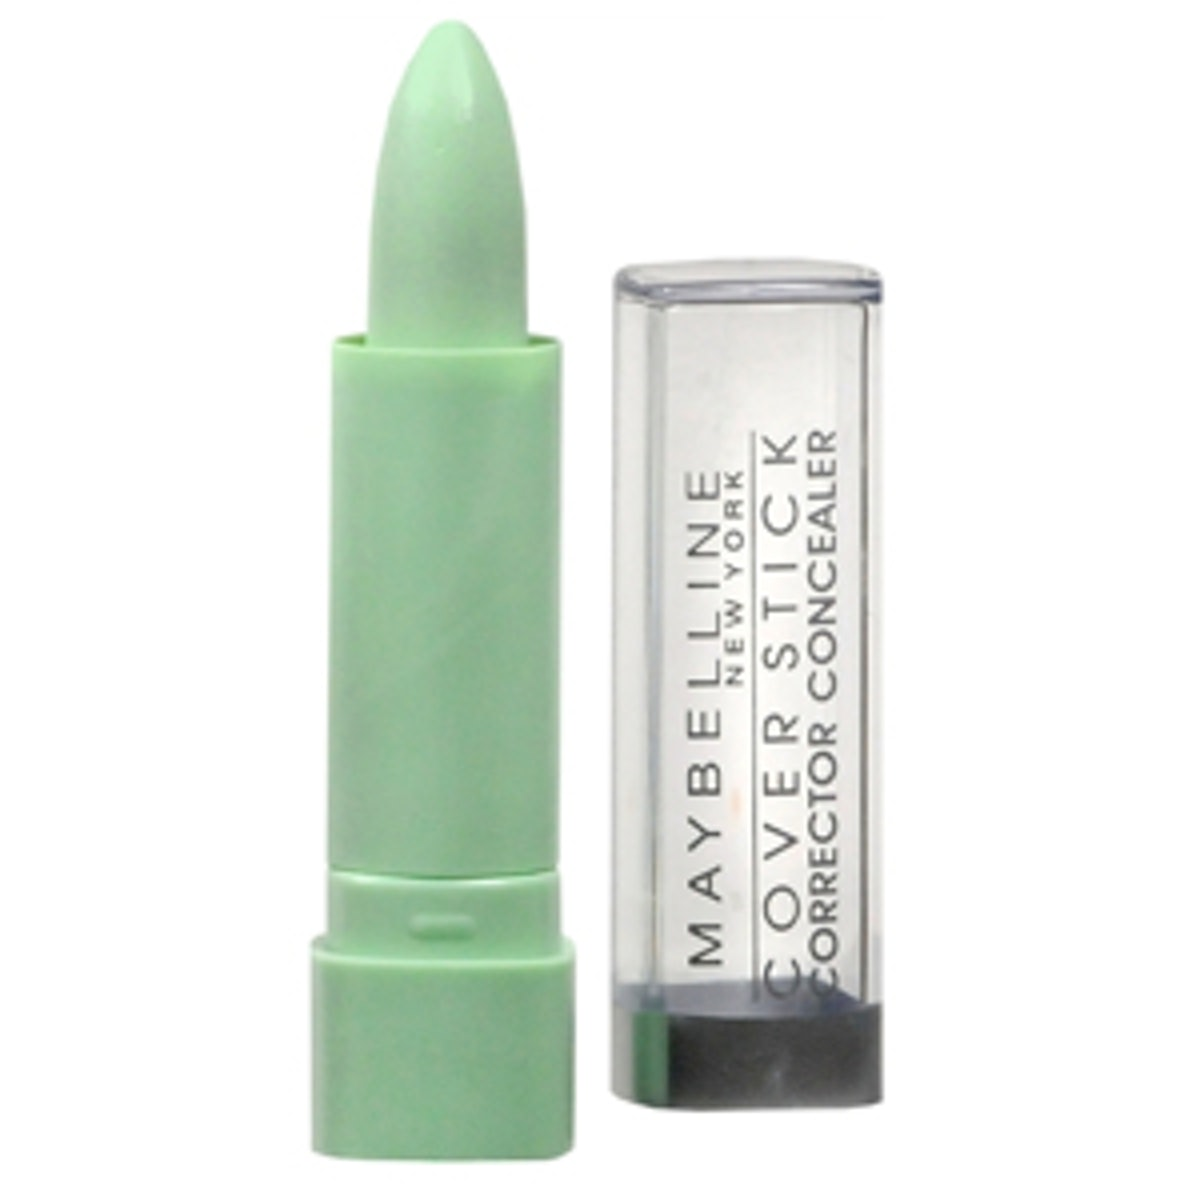 Cover Stick Corrector/Concealer in Green